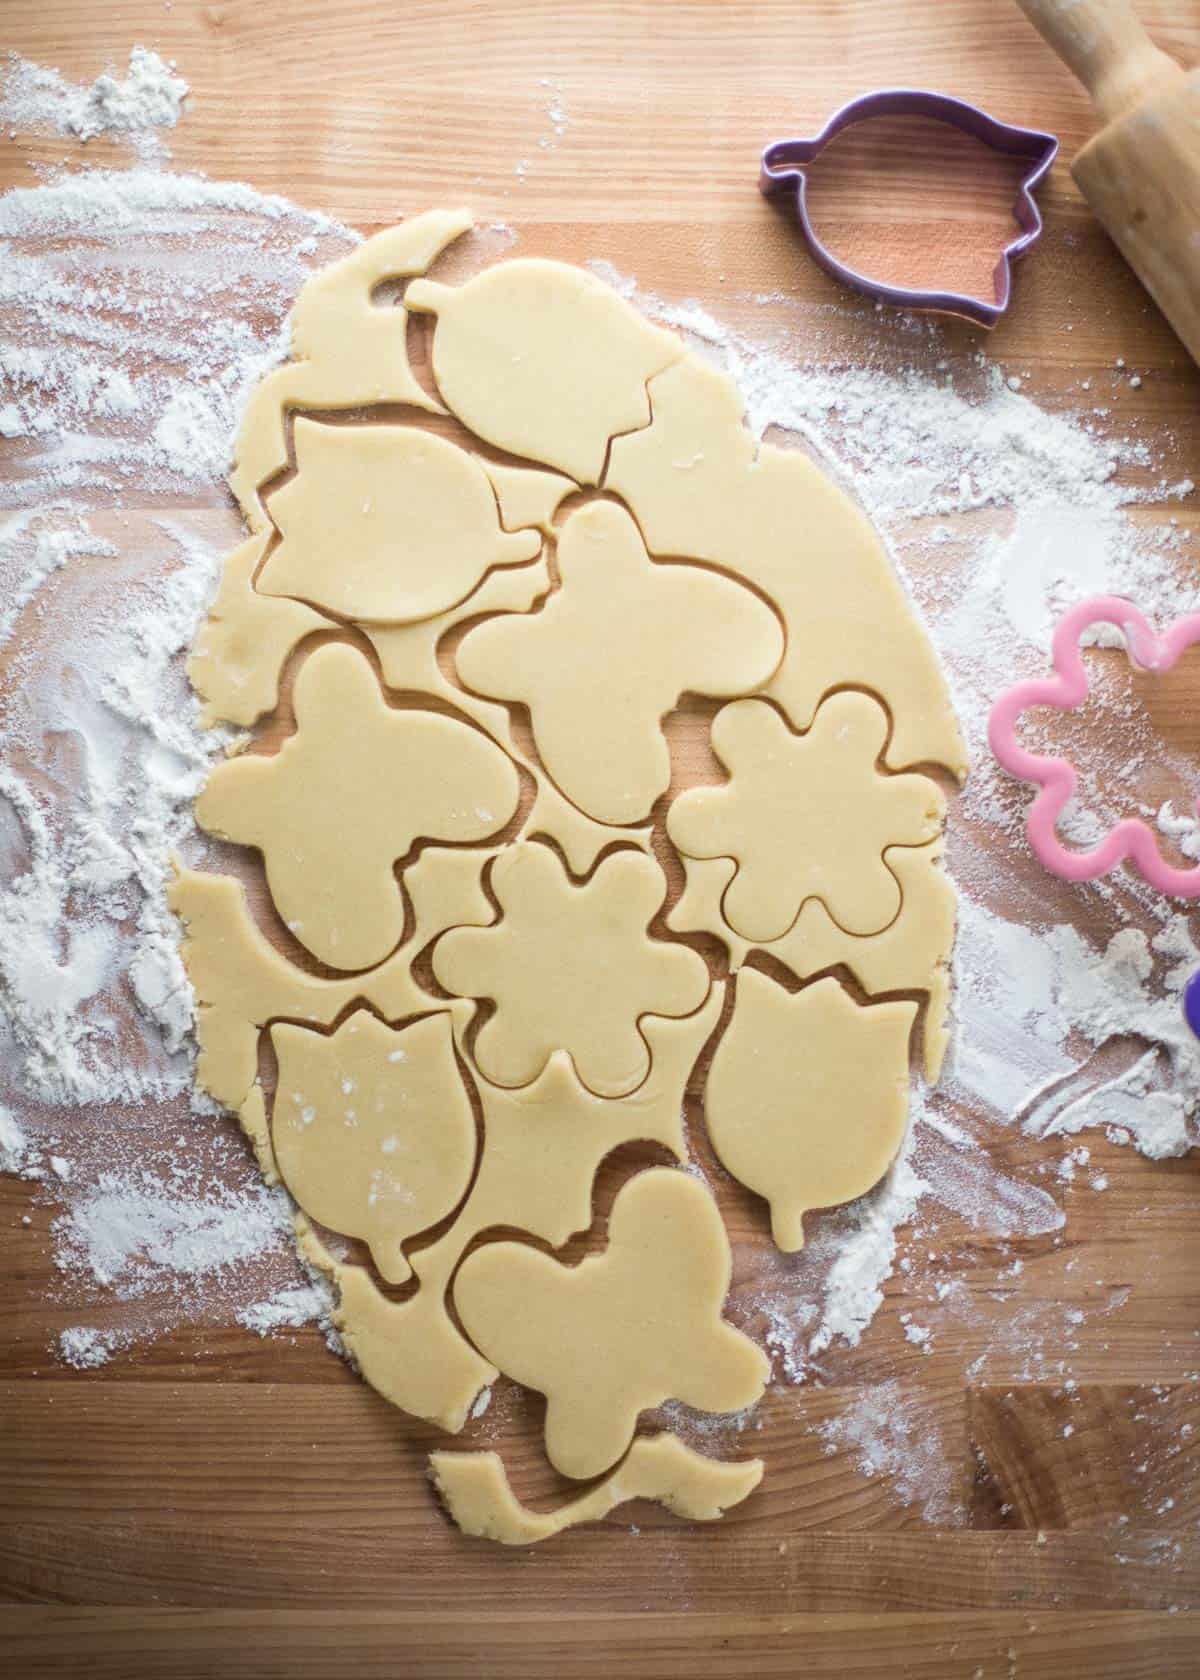 cutting out soft sugar cookies